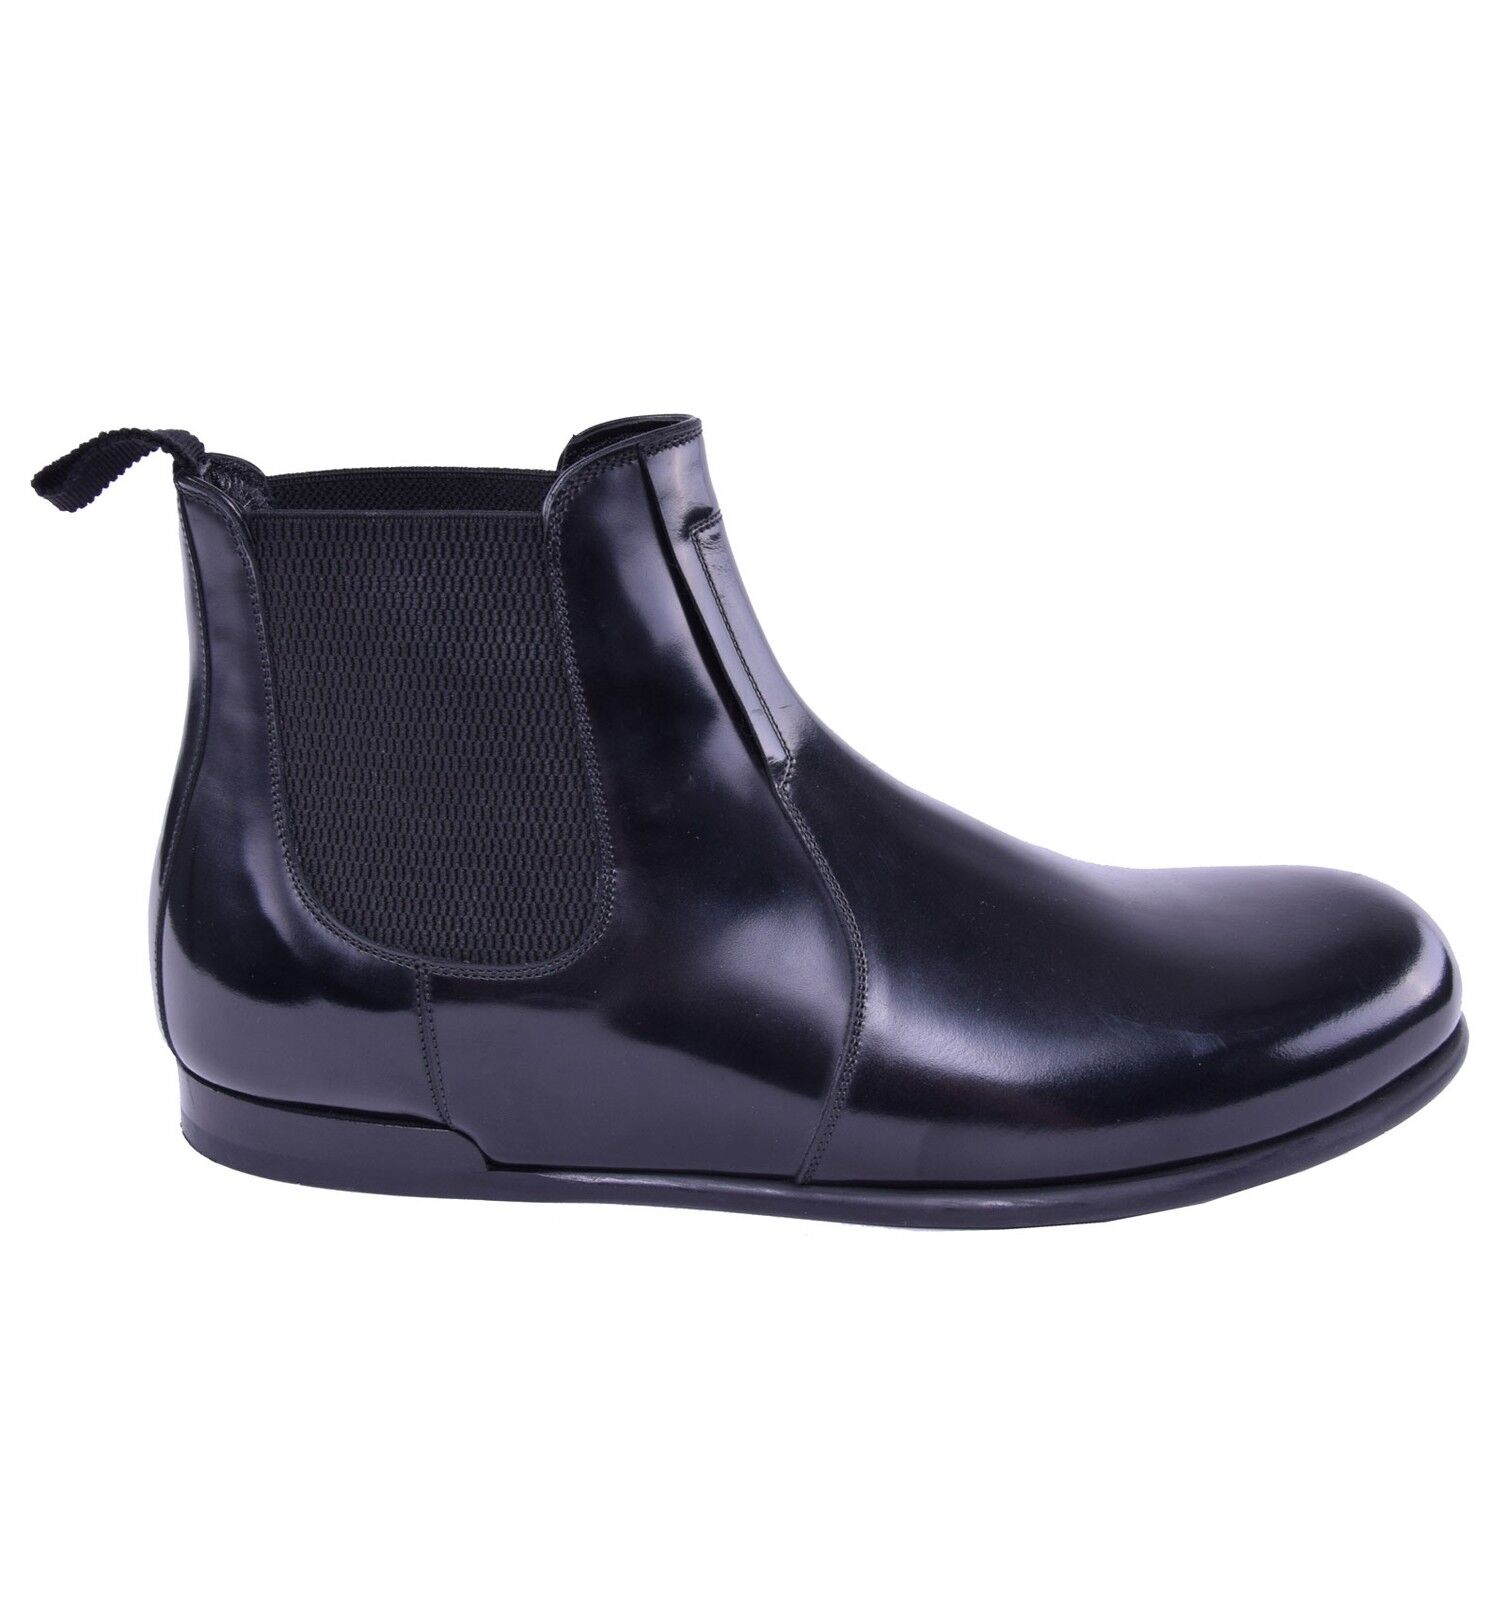 Dolce & gabbana runway boots black business shoes boots black 03822